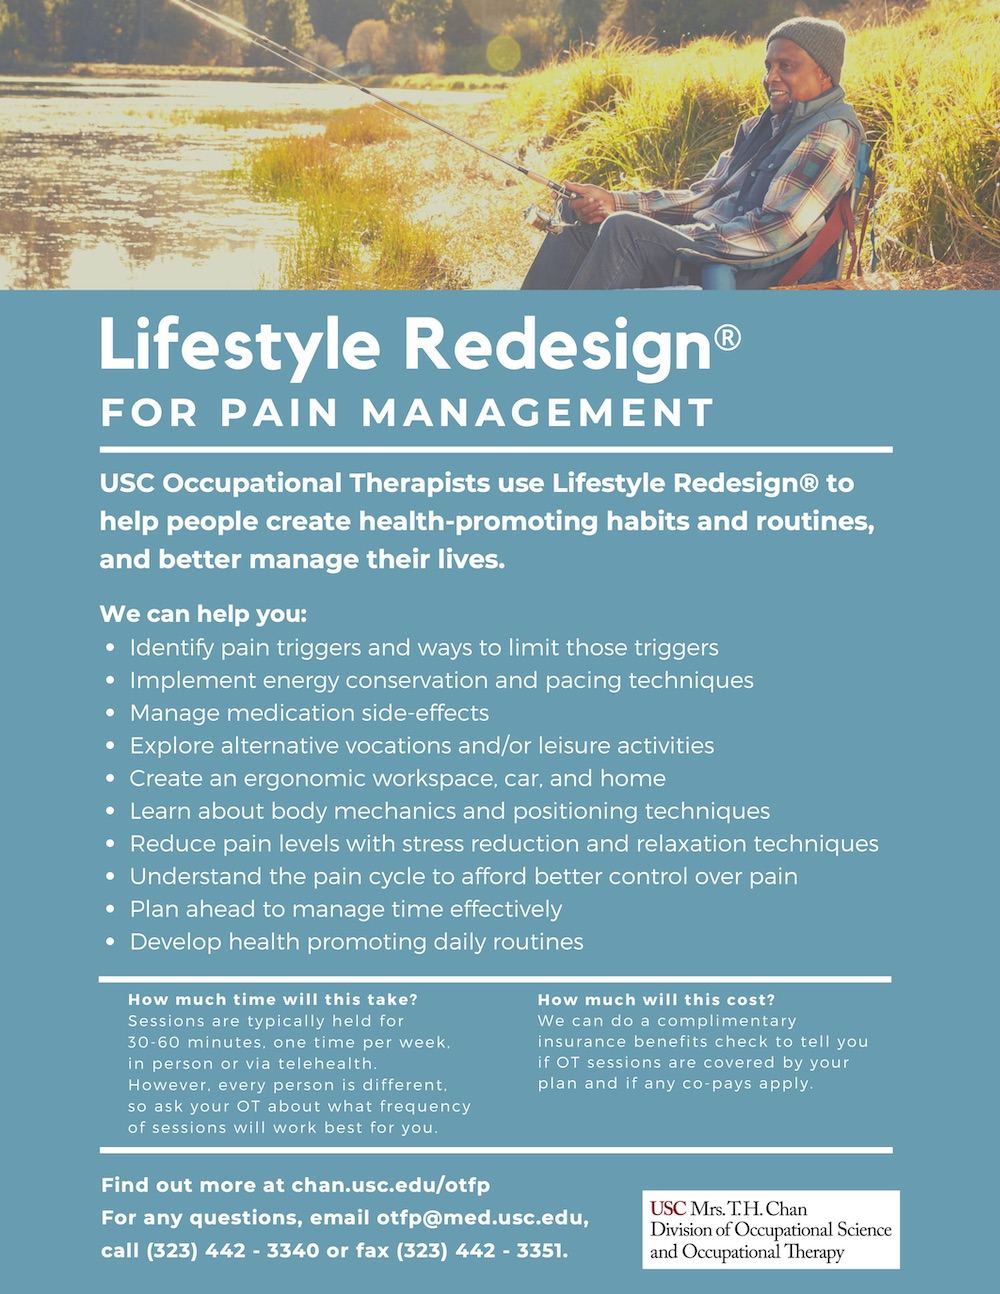 Lifestyle Redesign for Pain Management